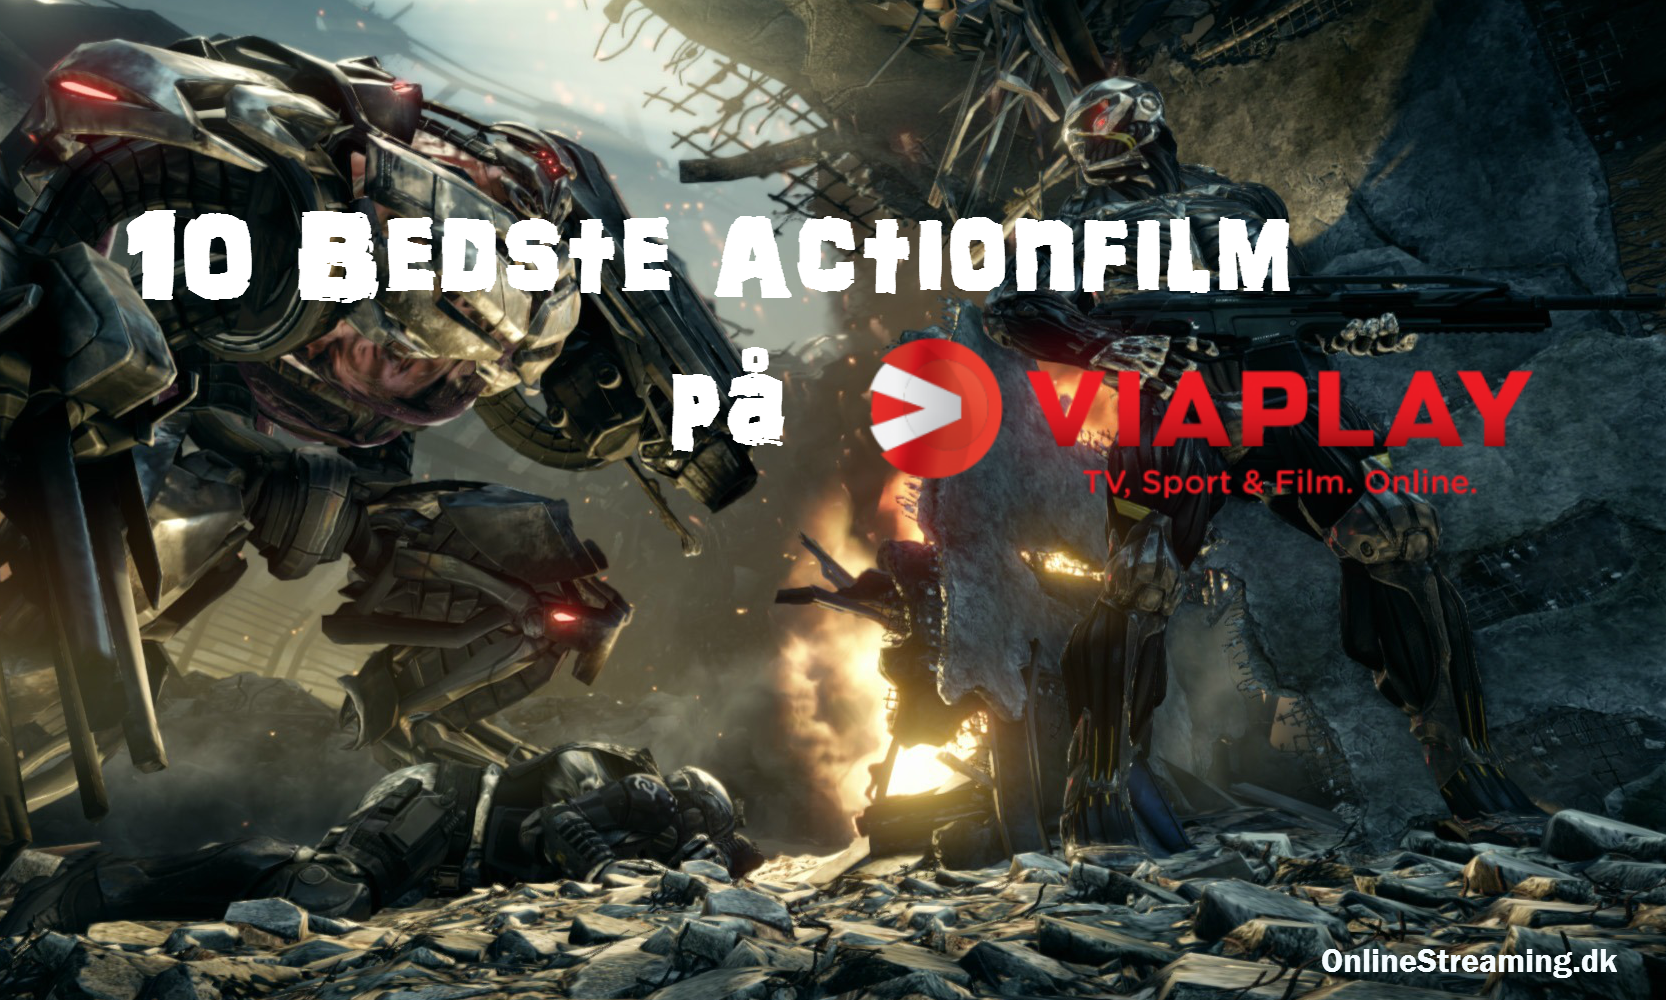 viaplay top film